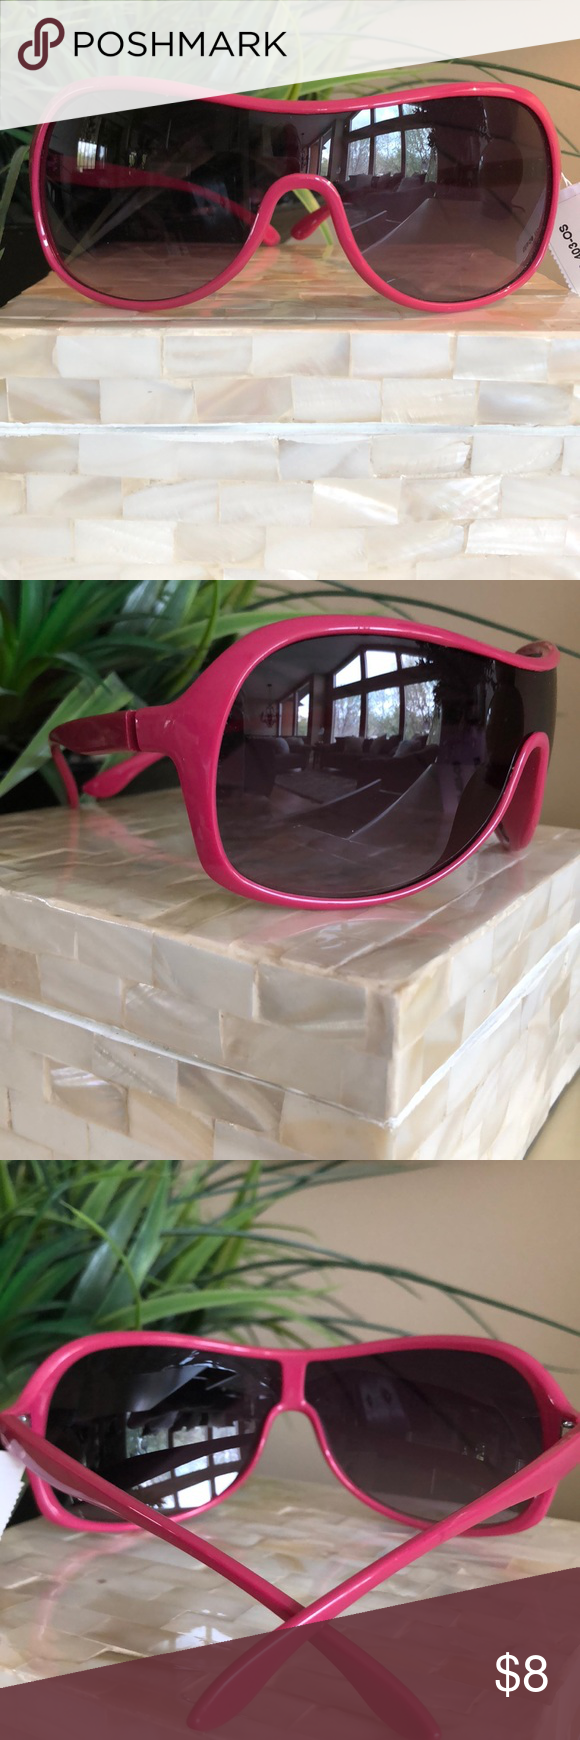 Pink Rim Shield Sunnies 100% UV Protection NWT Fun pink sunglasses with full UV Protection.  Purchased at a boutique last summer. They're lightweight and feature dark lenses. Great addition to your sunnnie collection! Boutique Accessories Sunglasses #pinkrims Pink Rim Shield Sunnies 100% UV Protection NWT Fun pink sunglasses with full UV Protection.  Purchased at a boutique last summer. They're lightweight and feature dark lenses. Great addition to your sunnnie collection! Boutique Accessori #pinkrims